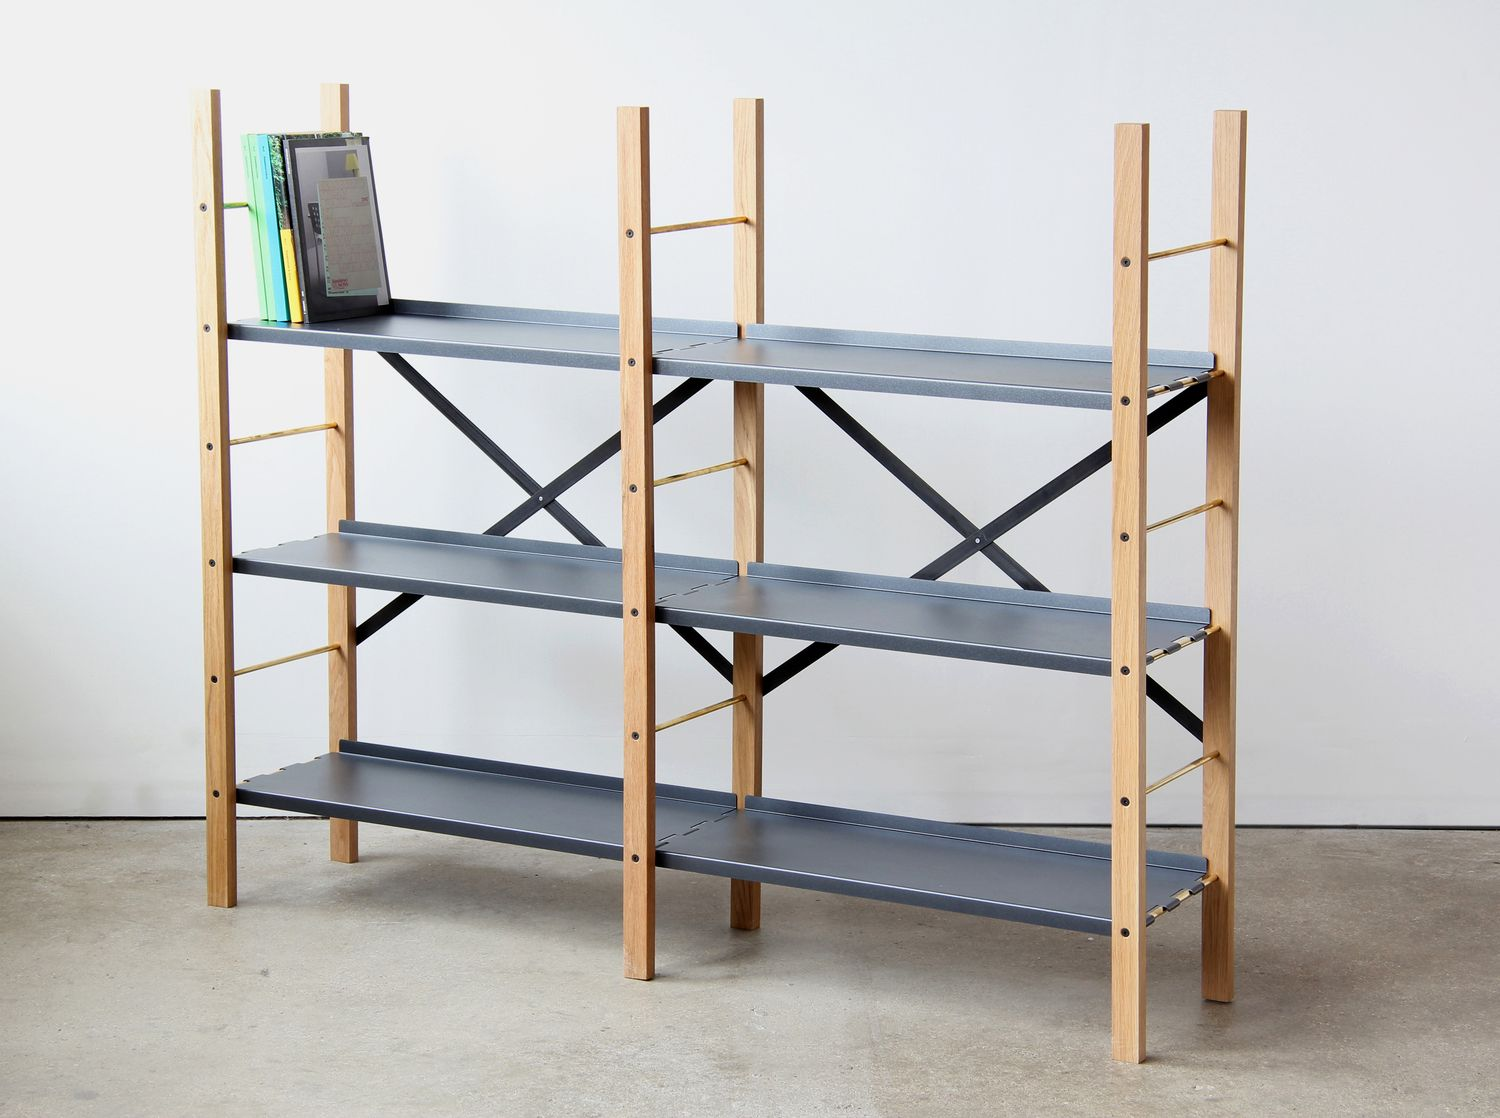 Ikea Libreria A Scala croquet shelving by very good & proper | wooden storage